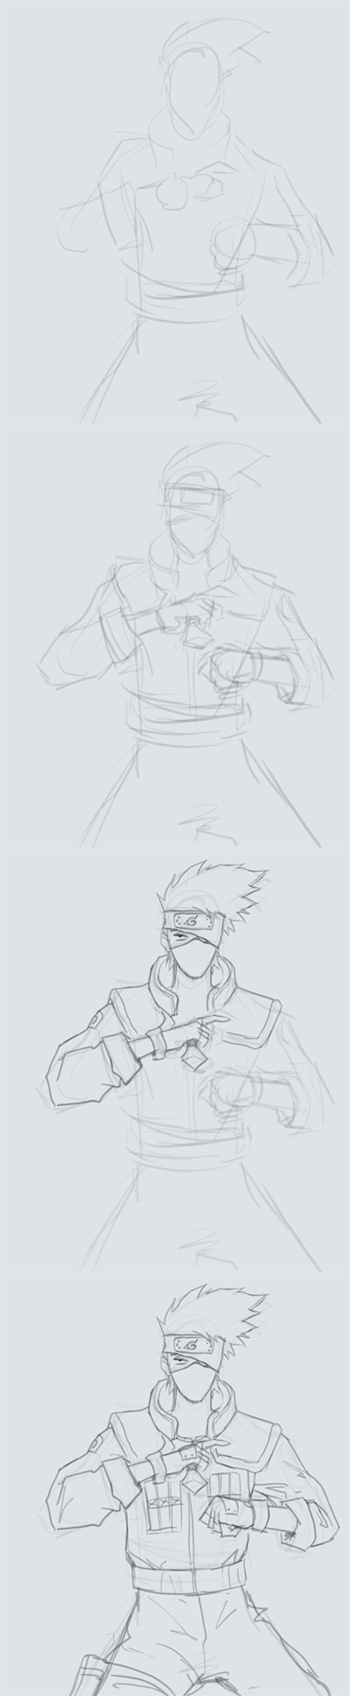 how to draw naruto kakashi How to draw Kakashi from Naruto